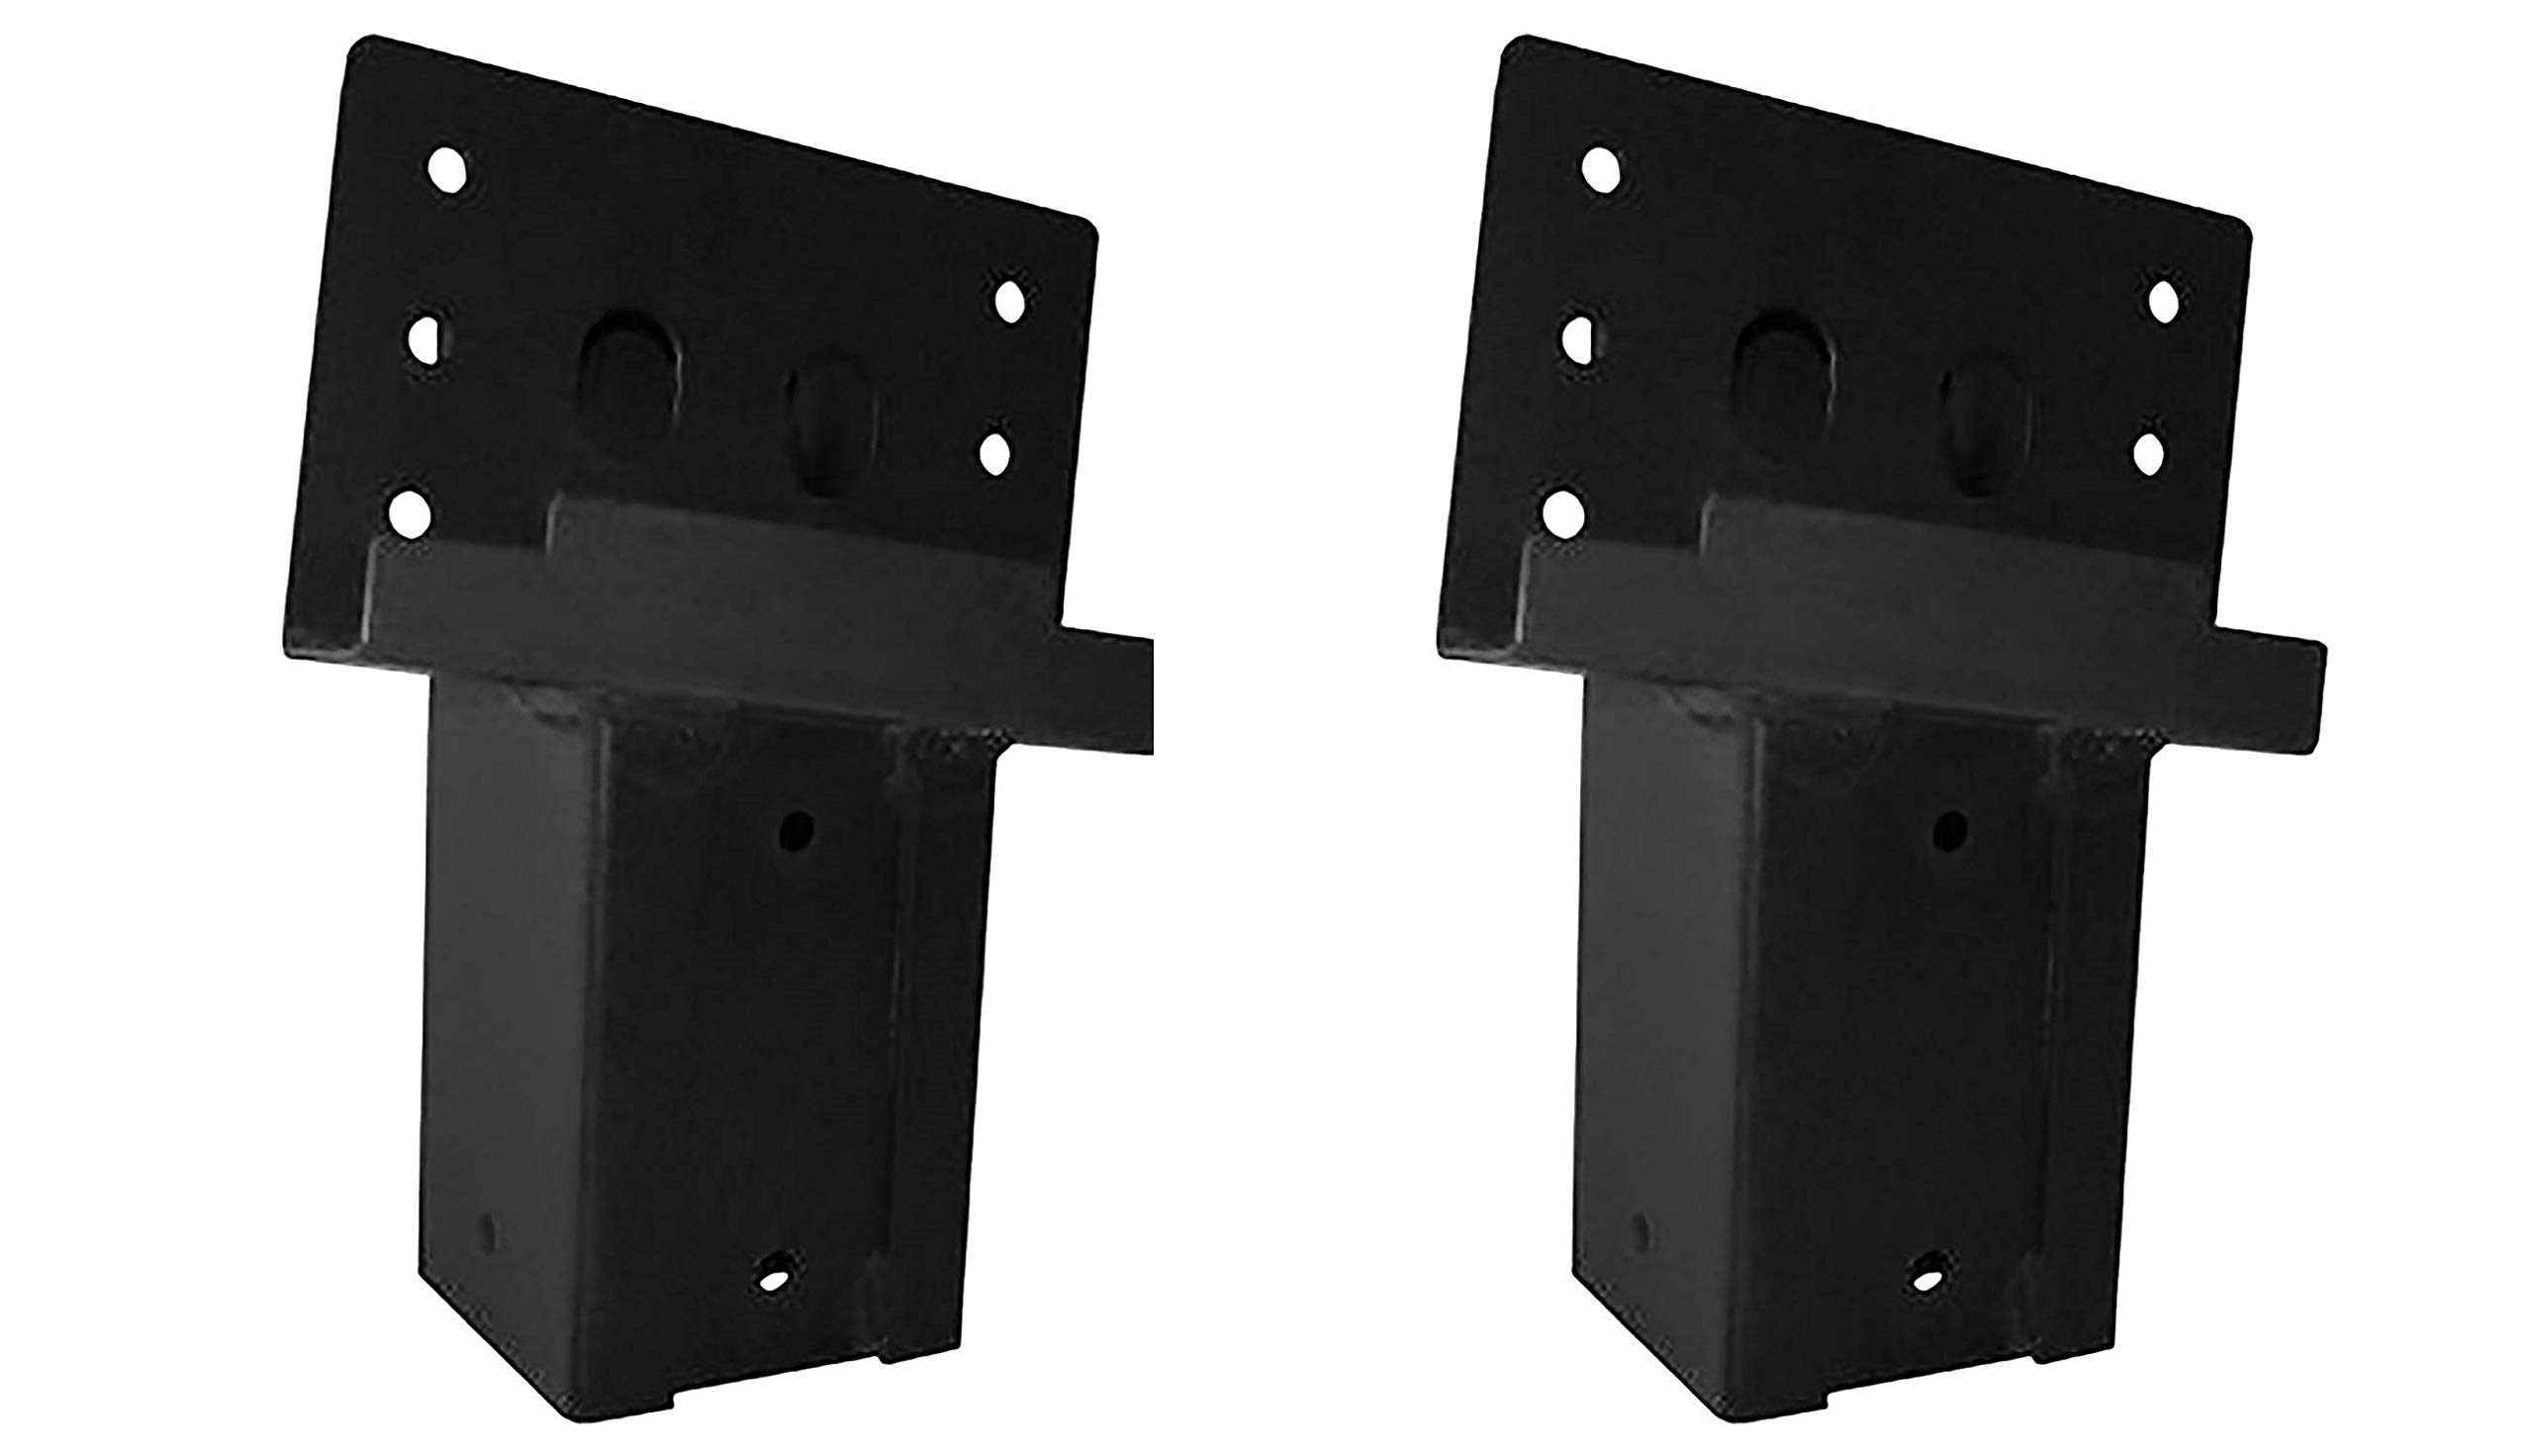 Elevators 4x4 Brackets for Deer Blinds, Playhouses, Swing Sets, Tree Houses. Made in The USA with Premium Construction Grade Steel. (Set of 4) (Pack of 2)